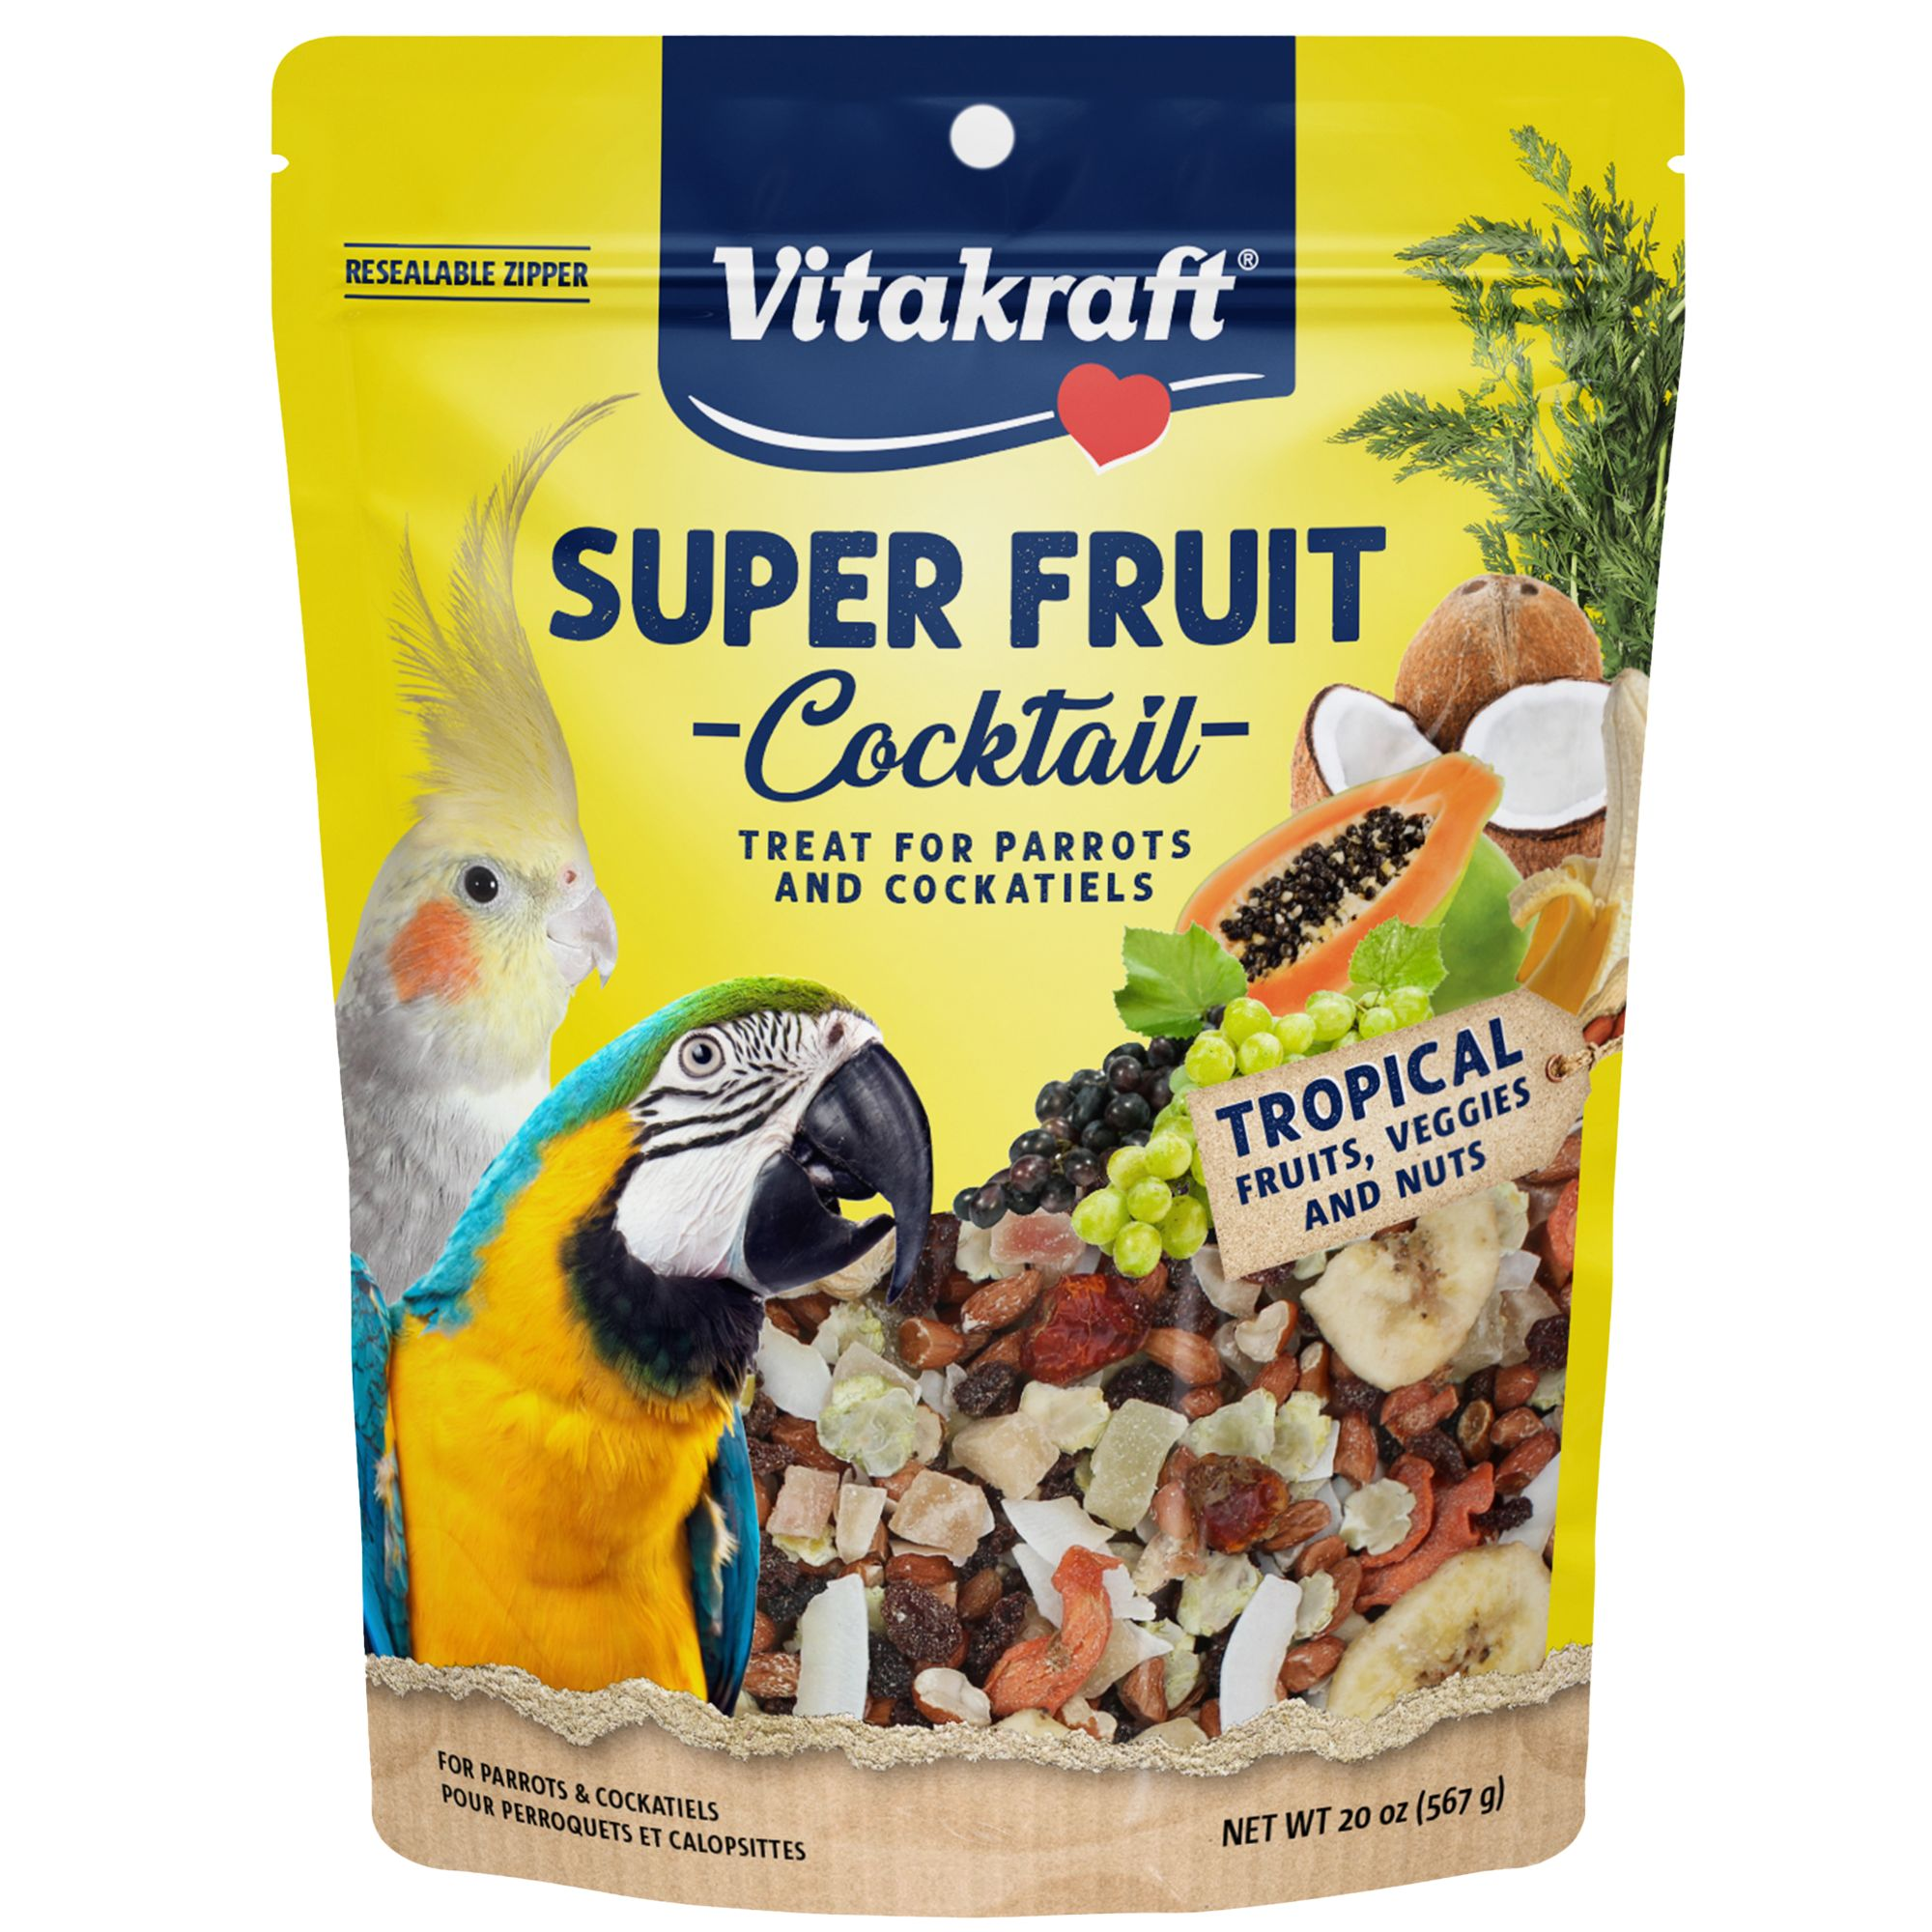 Vitakraft Fruit Cocktail Parrot and Cockatiel Treat size: 20 Oz 1441268